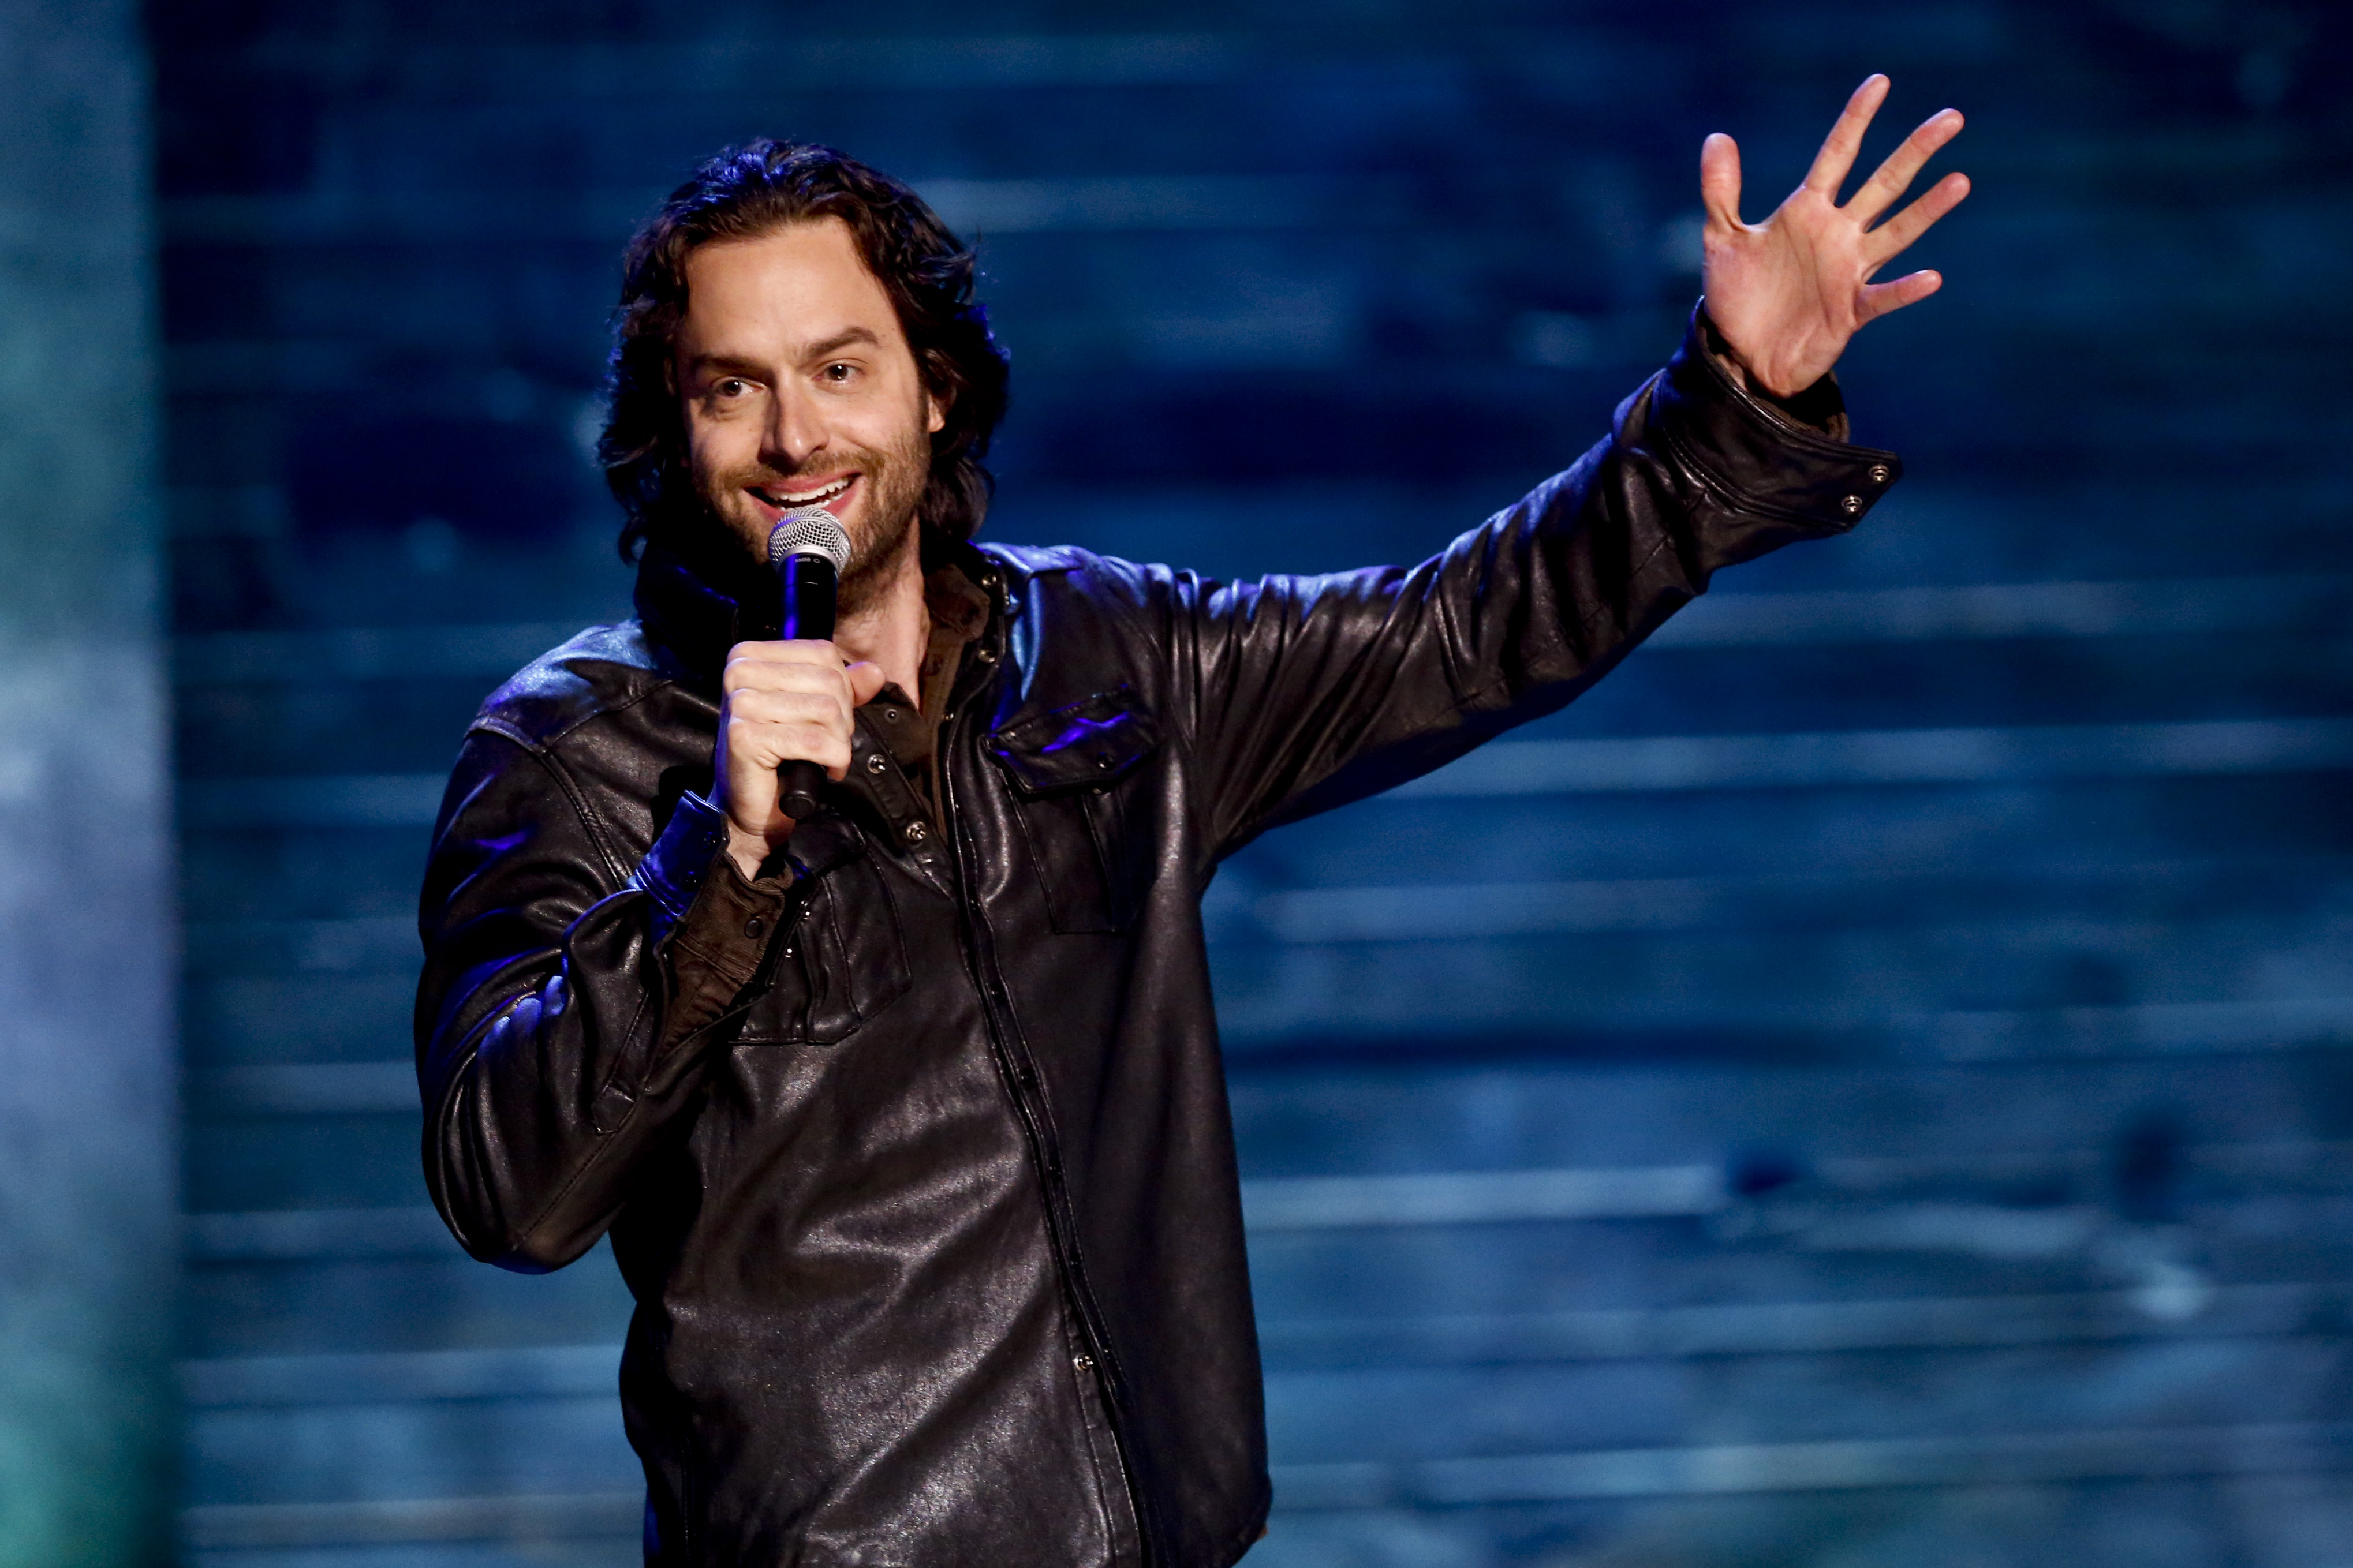 Chris D'Ellia